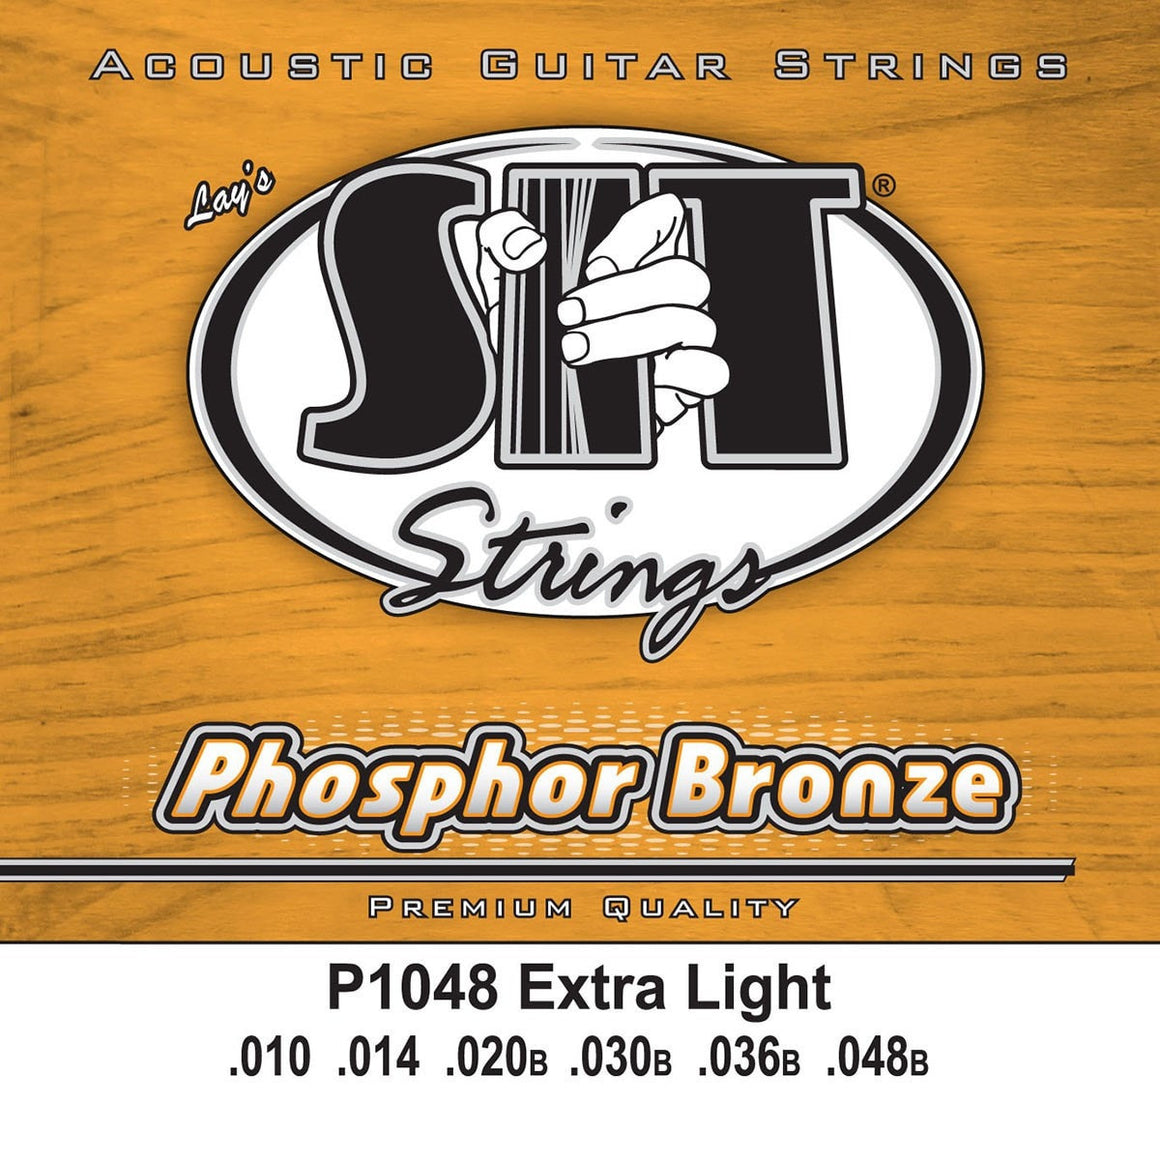 SIT Strings Acoustic Guitar Strings SIT Phosphor Bronze Extra Light P1046 Acoustic Guitar Strings